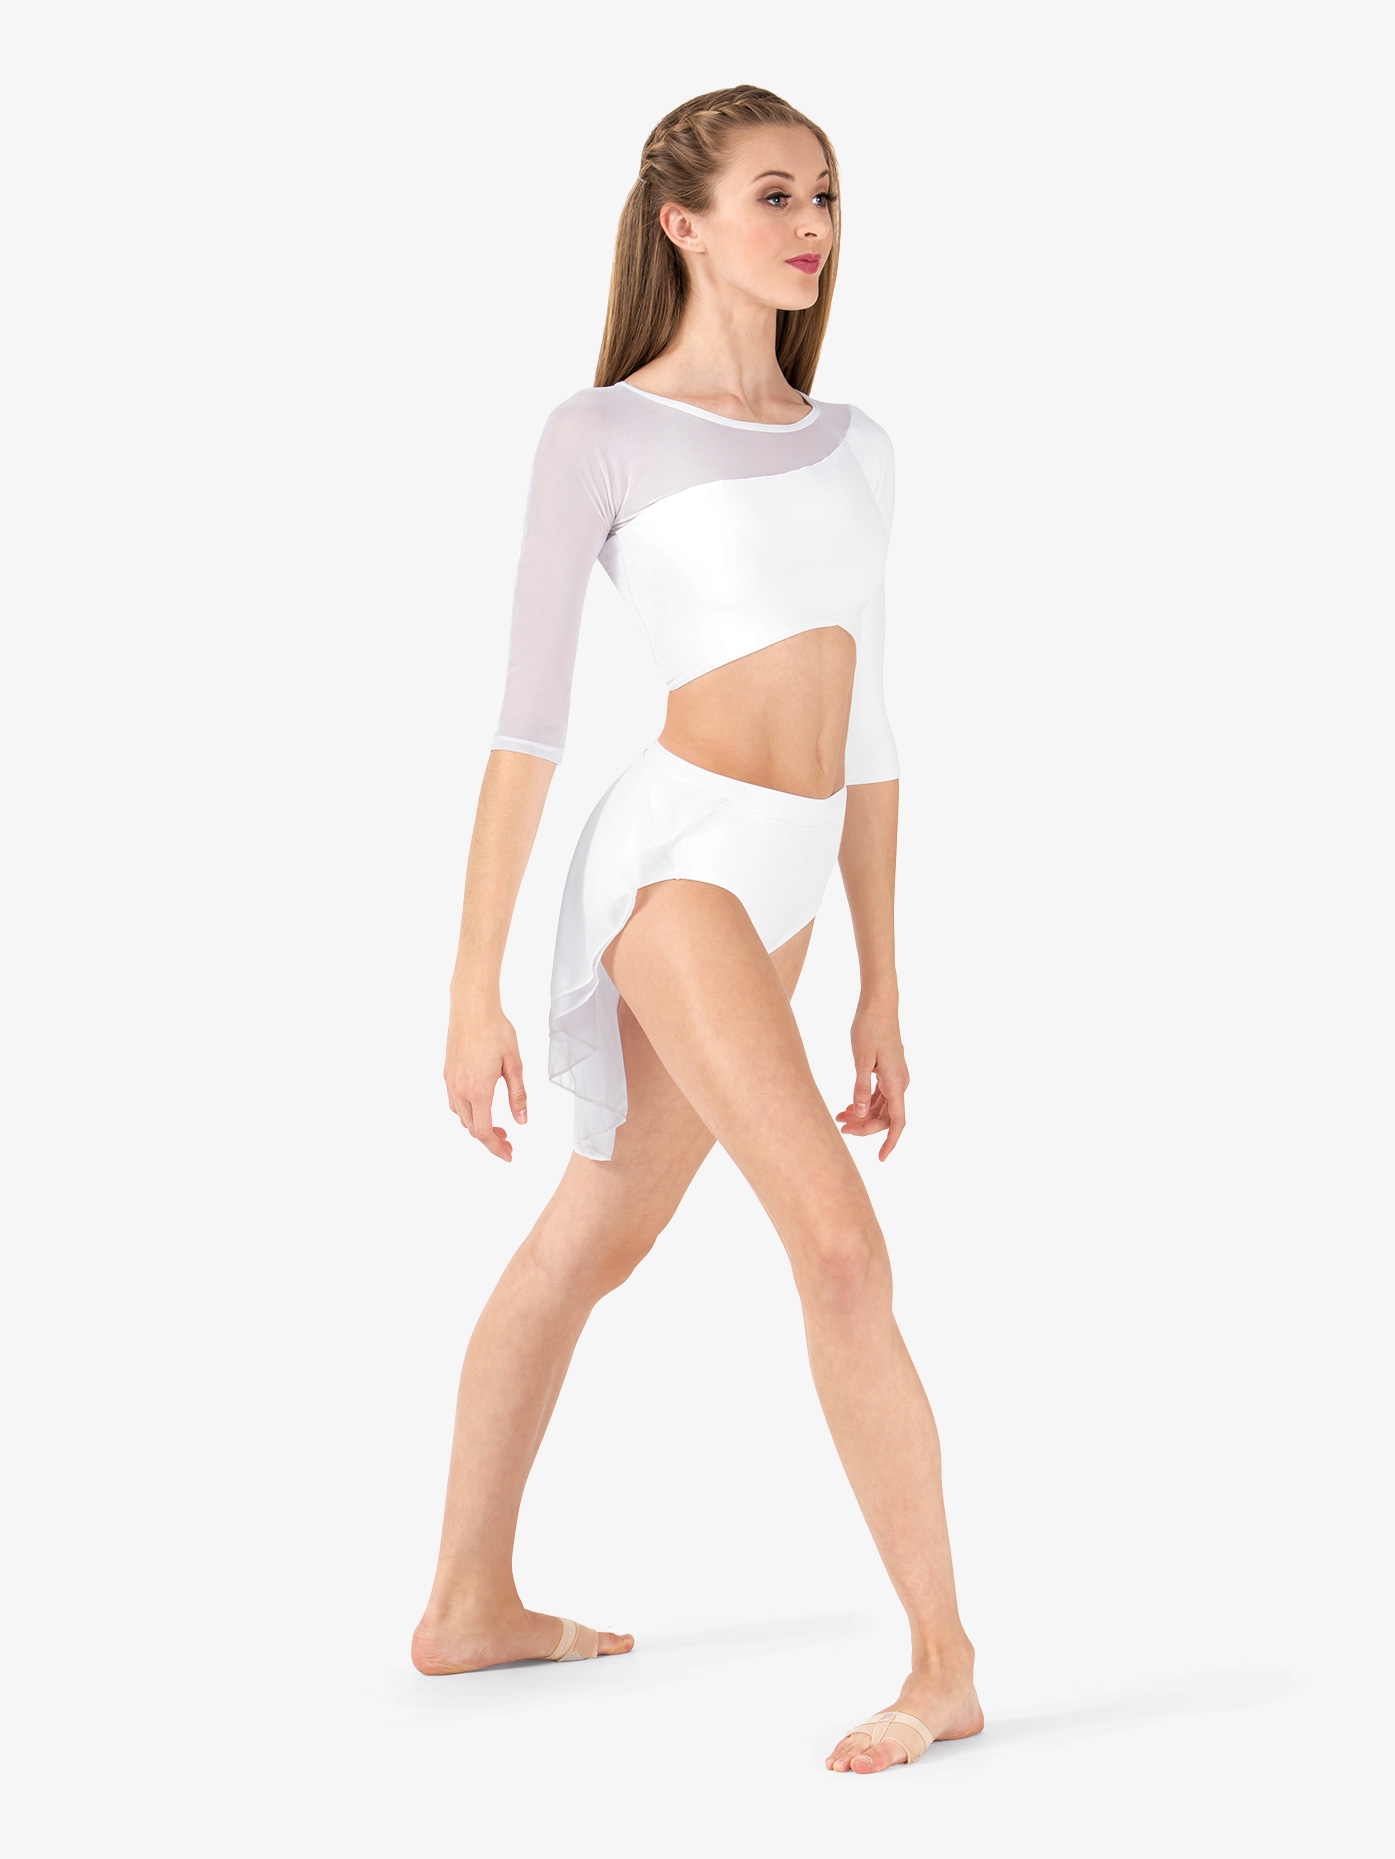 de7a1f535f6c8 3 4 Sleeve Asymmetrical Dance Crop Top - Crop Tops